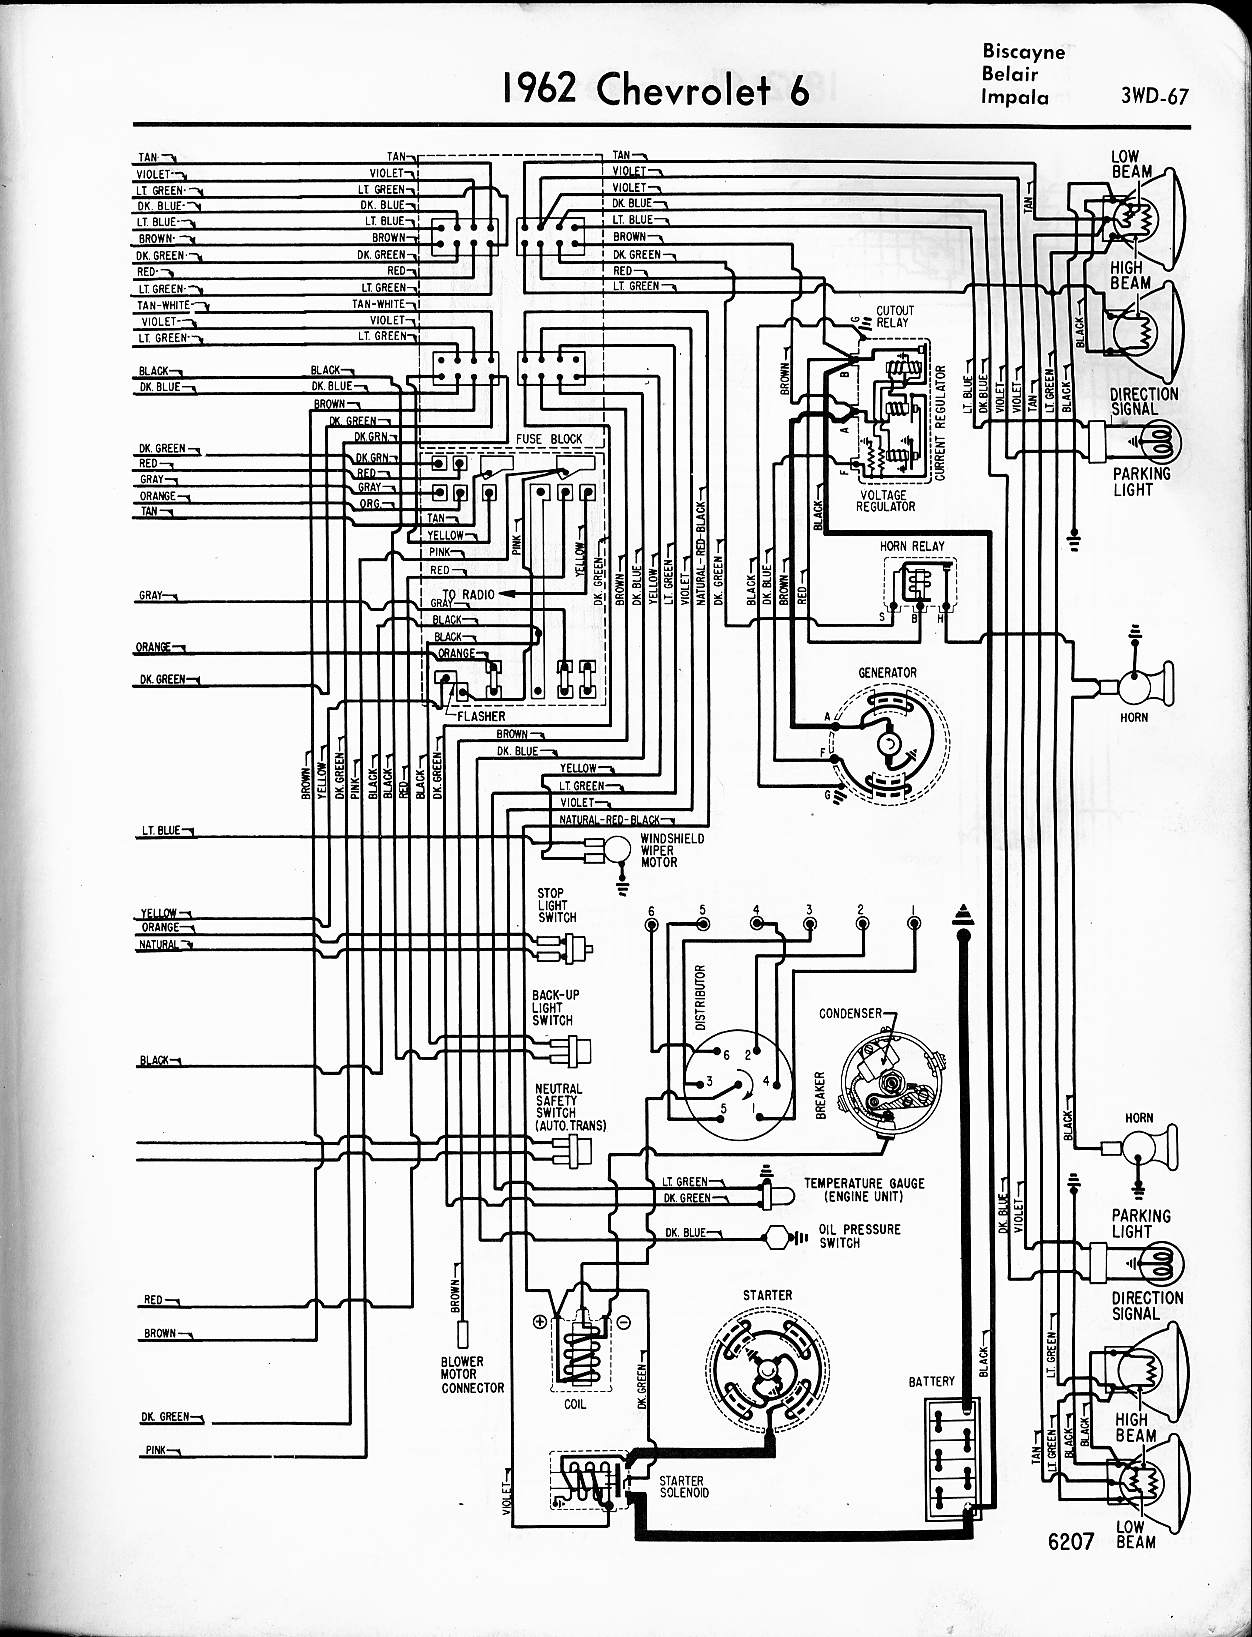 MWireChev62_3WD 067 1962 chevy truck wiring diagram 1960 chevy truck wiring diagram 1962 chevy truck wiring diagram at readyjetset.co